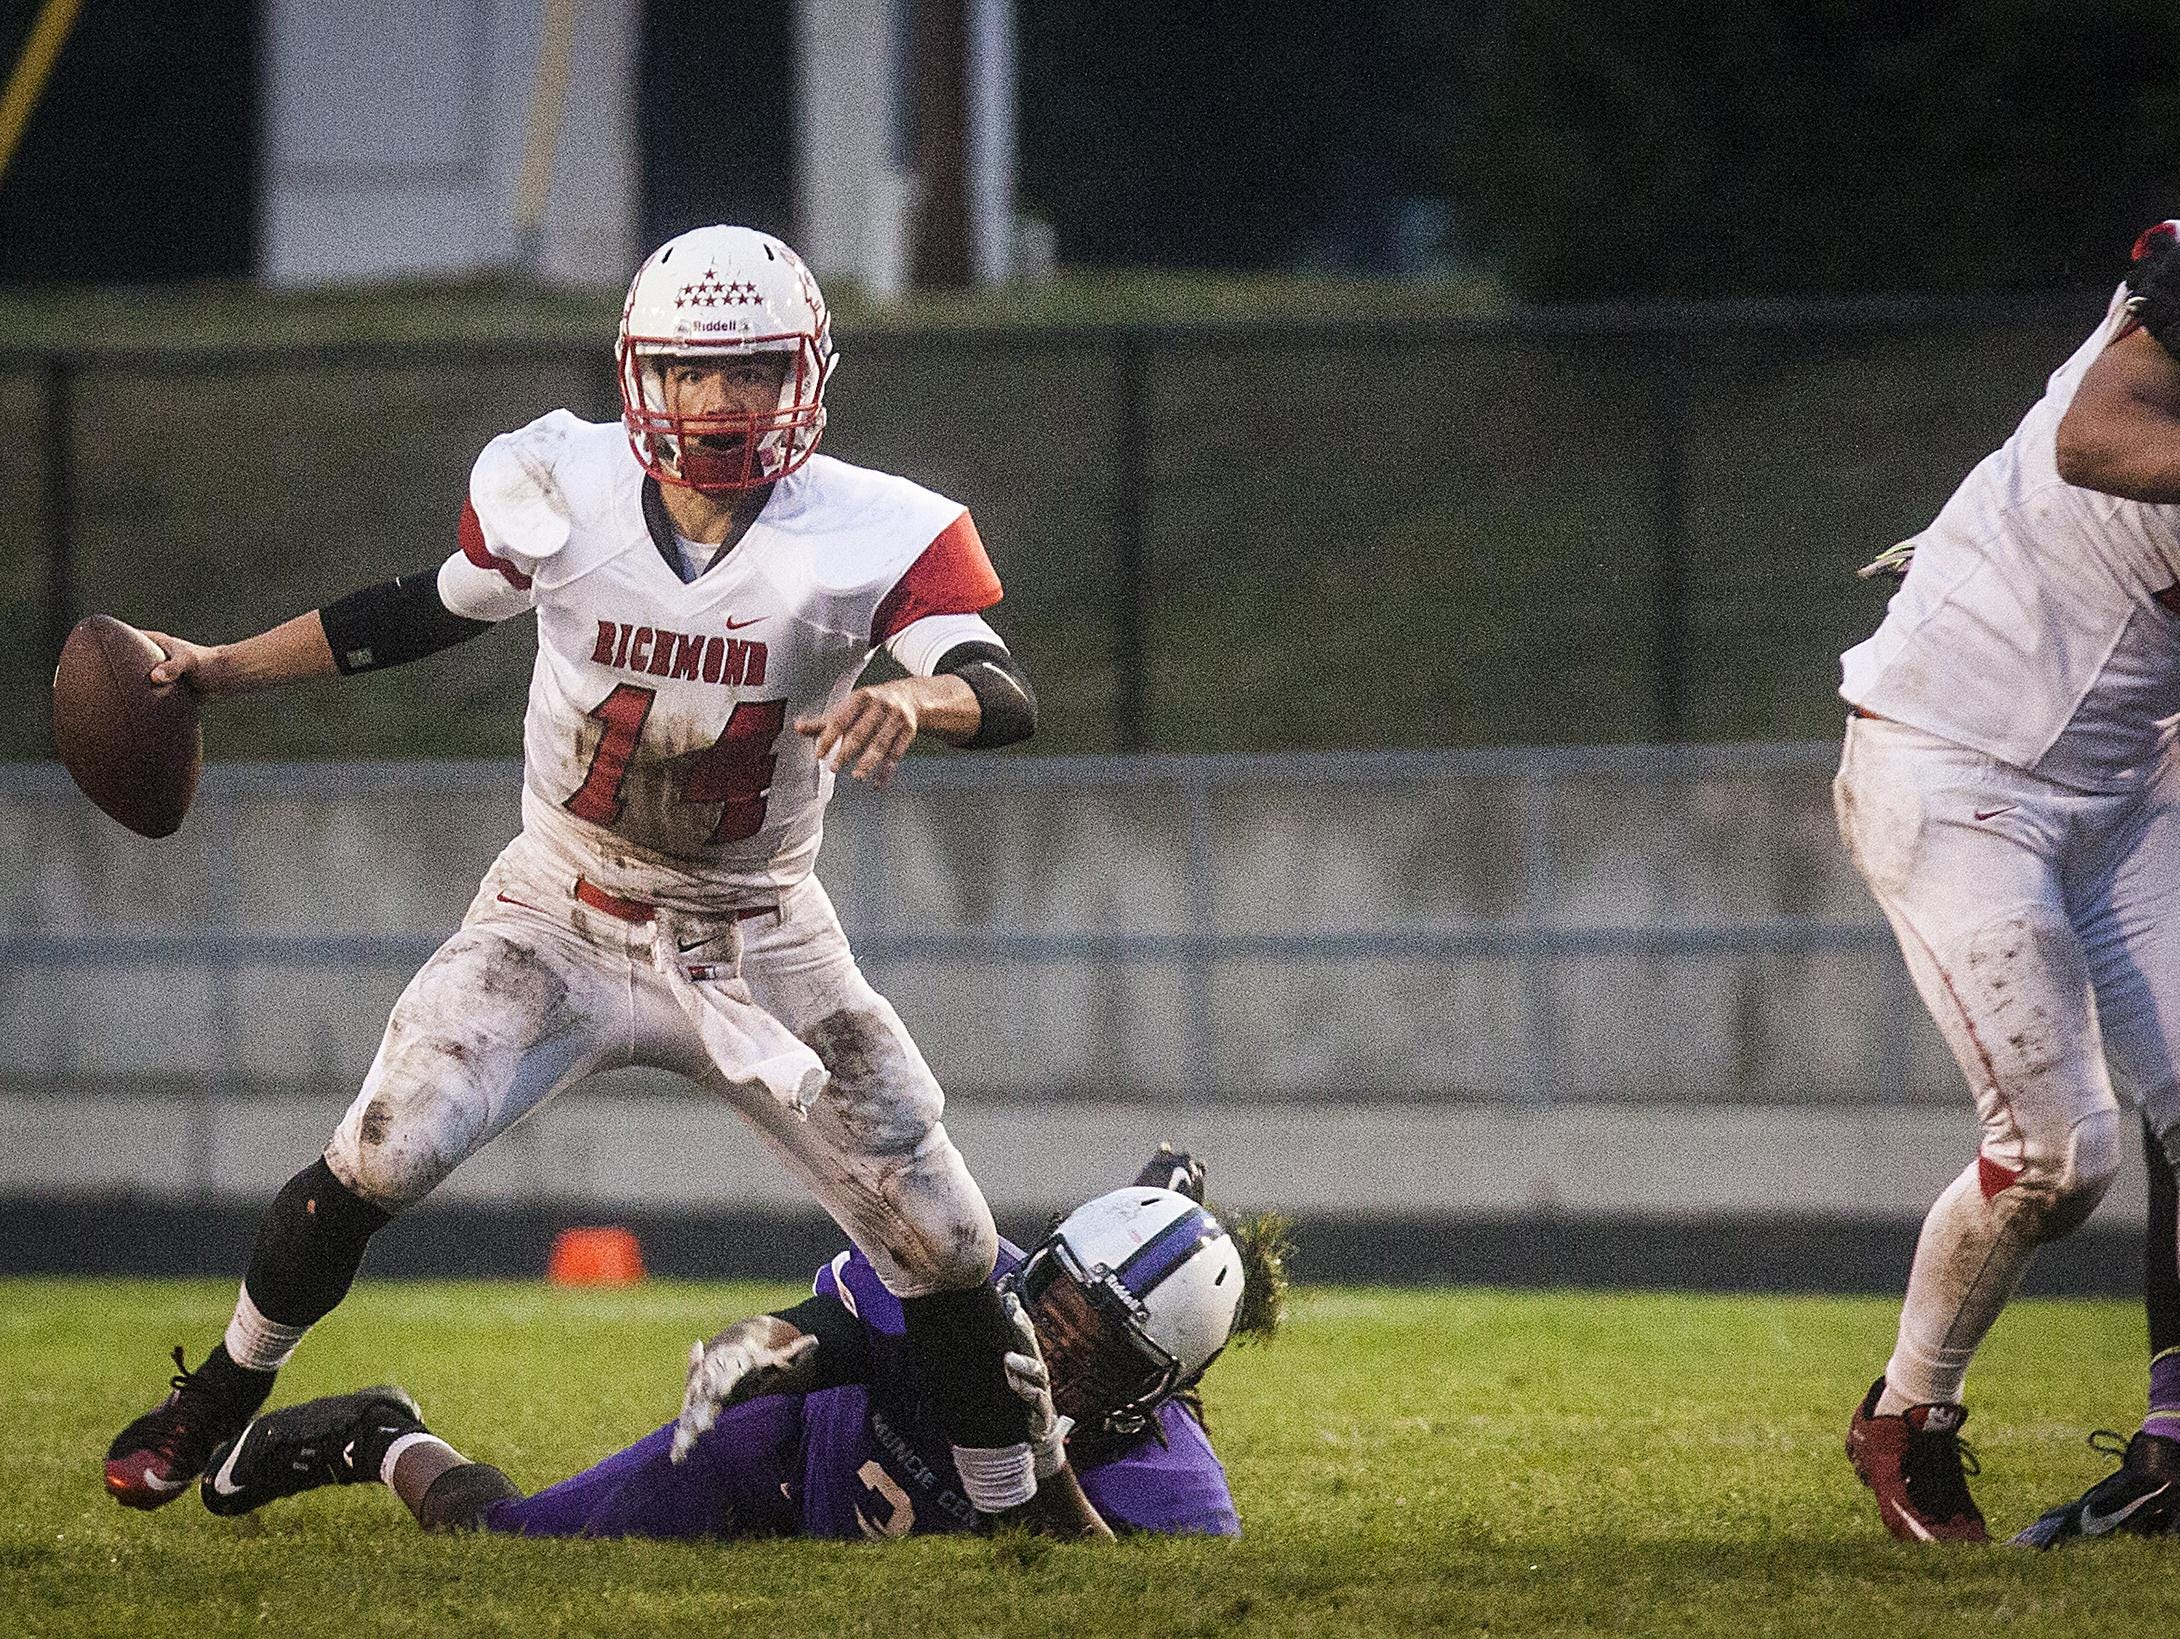 Richmond's Jordan Christian fights against Central's defense during their game at Central Friday evening.